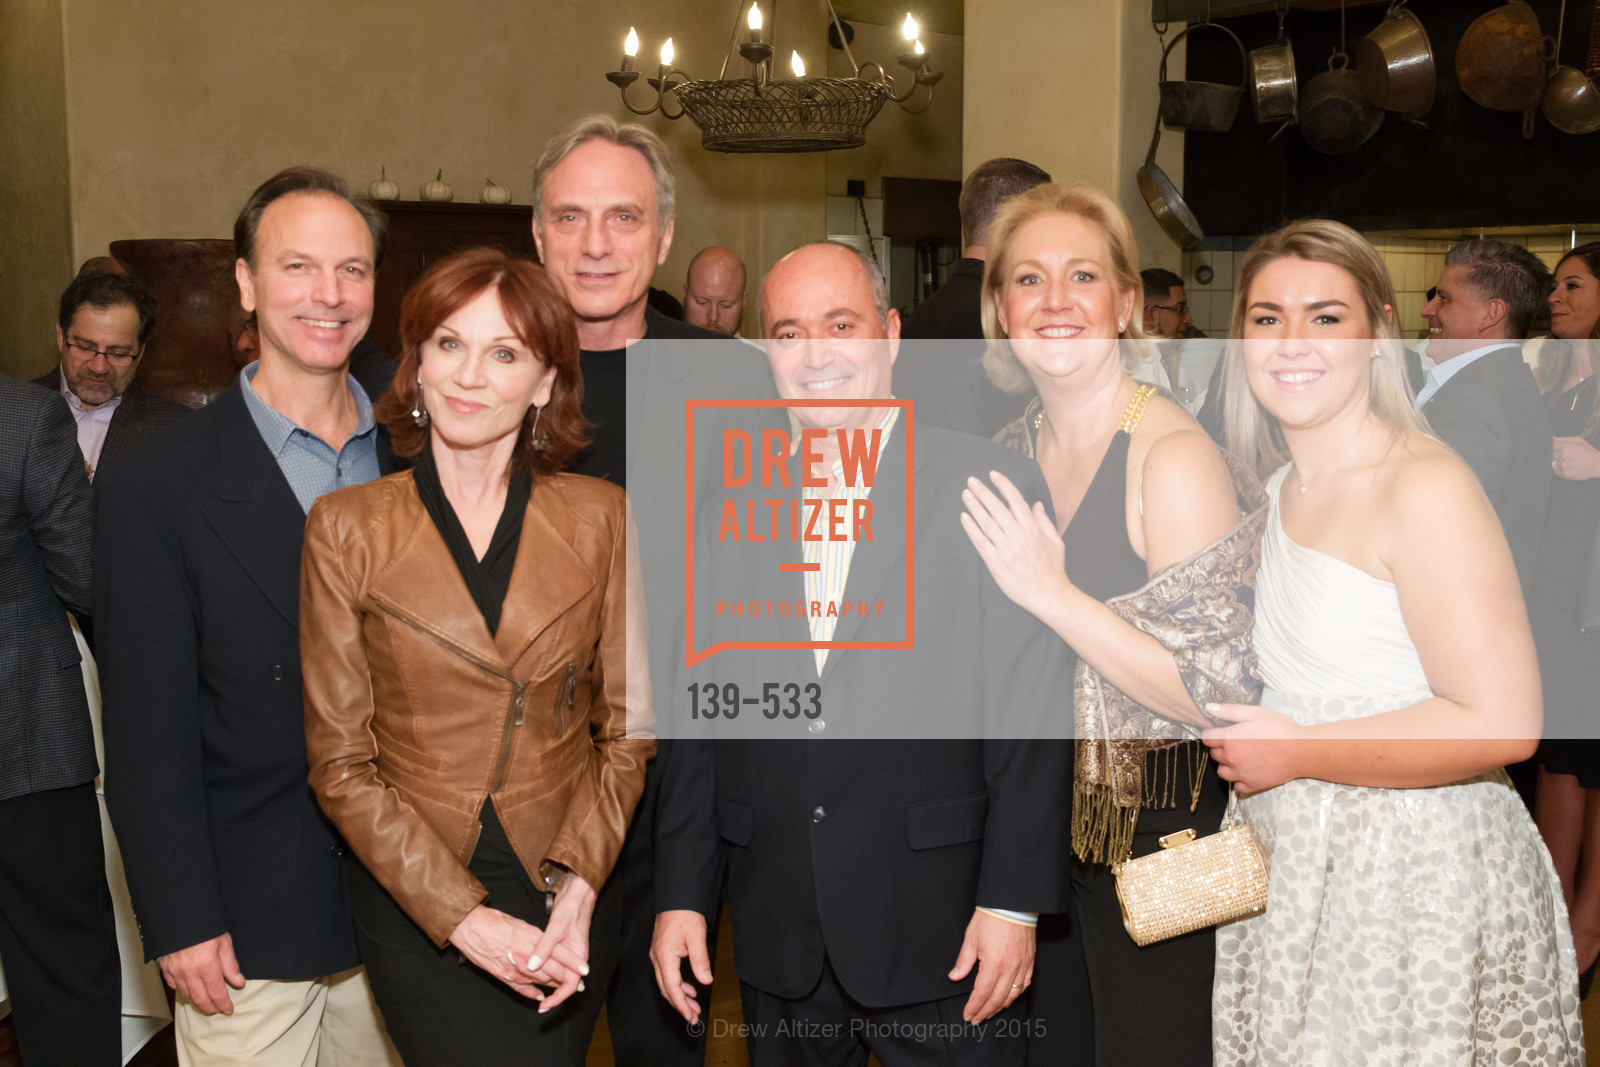 Lorin Henner, Marilu Henner, Michael Brown, John Gumas, Janice Gumas, Hellenic Charity Ball Cocktail Reception, Kokkari. 200 Jackson St, San Francisco, CA 94111, November 13th, 2015,Drew Altizer, Drew Altizer Photography, full-service agency, private events, San Francisco photographer, photographer california